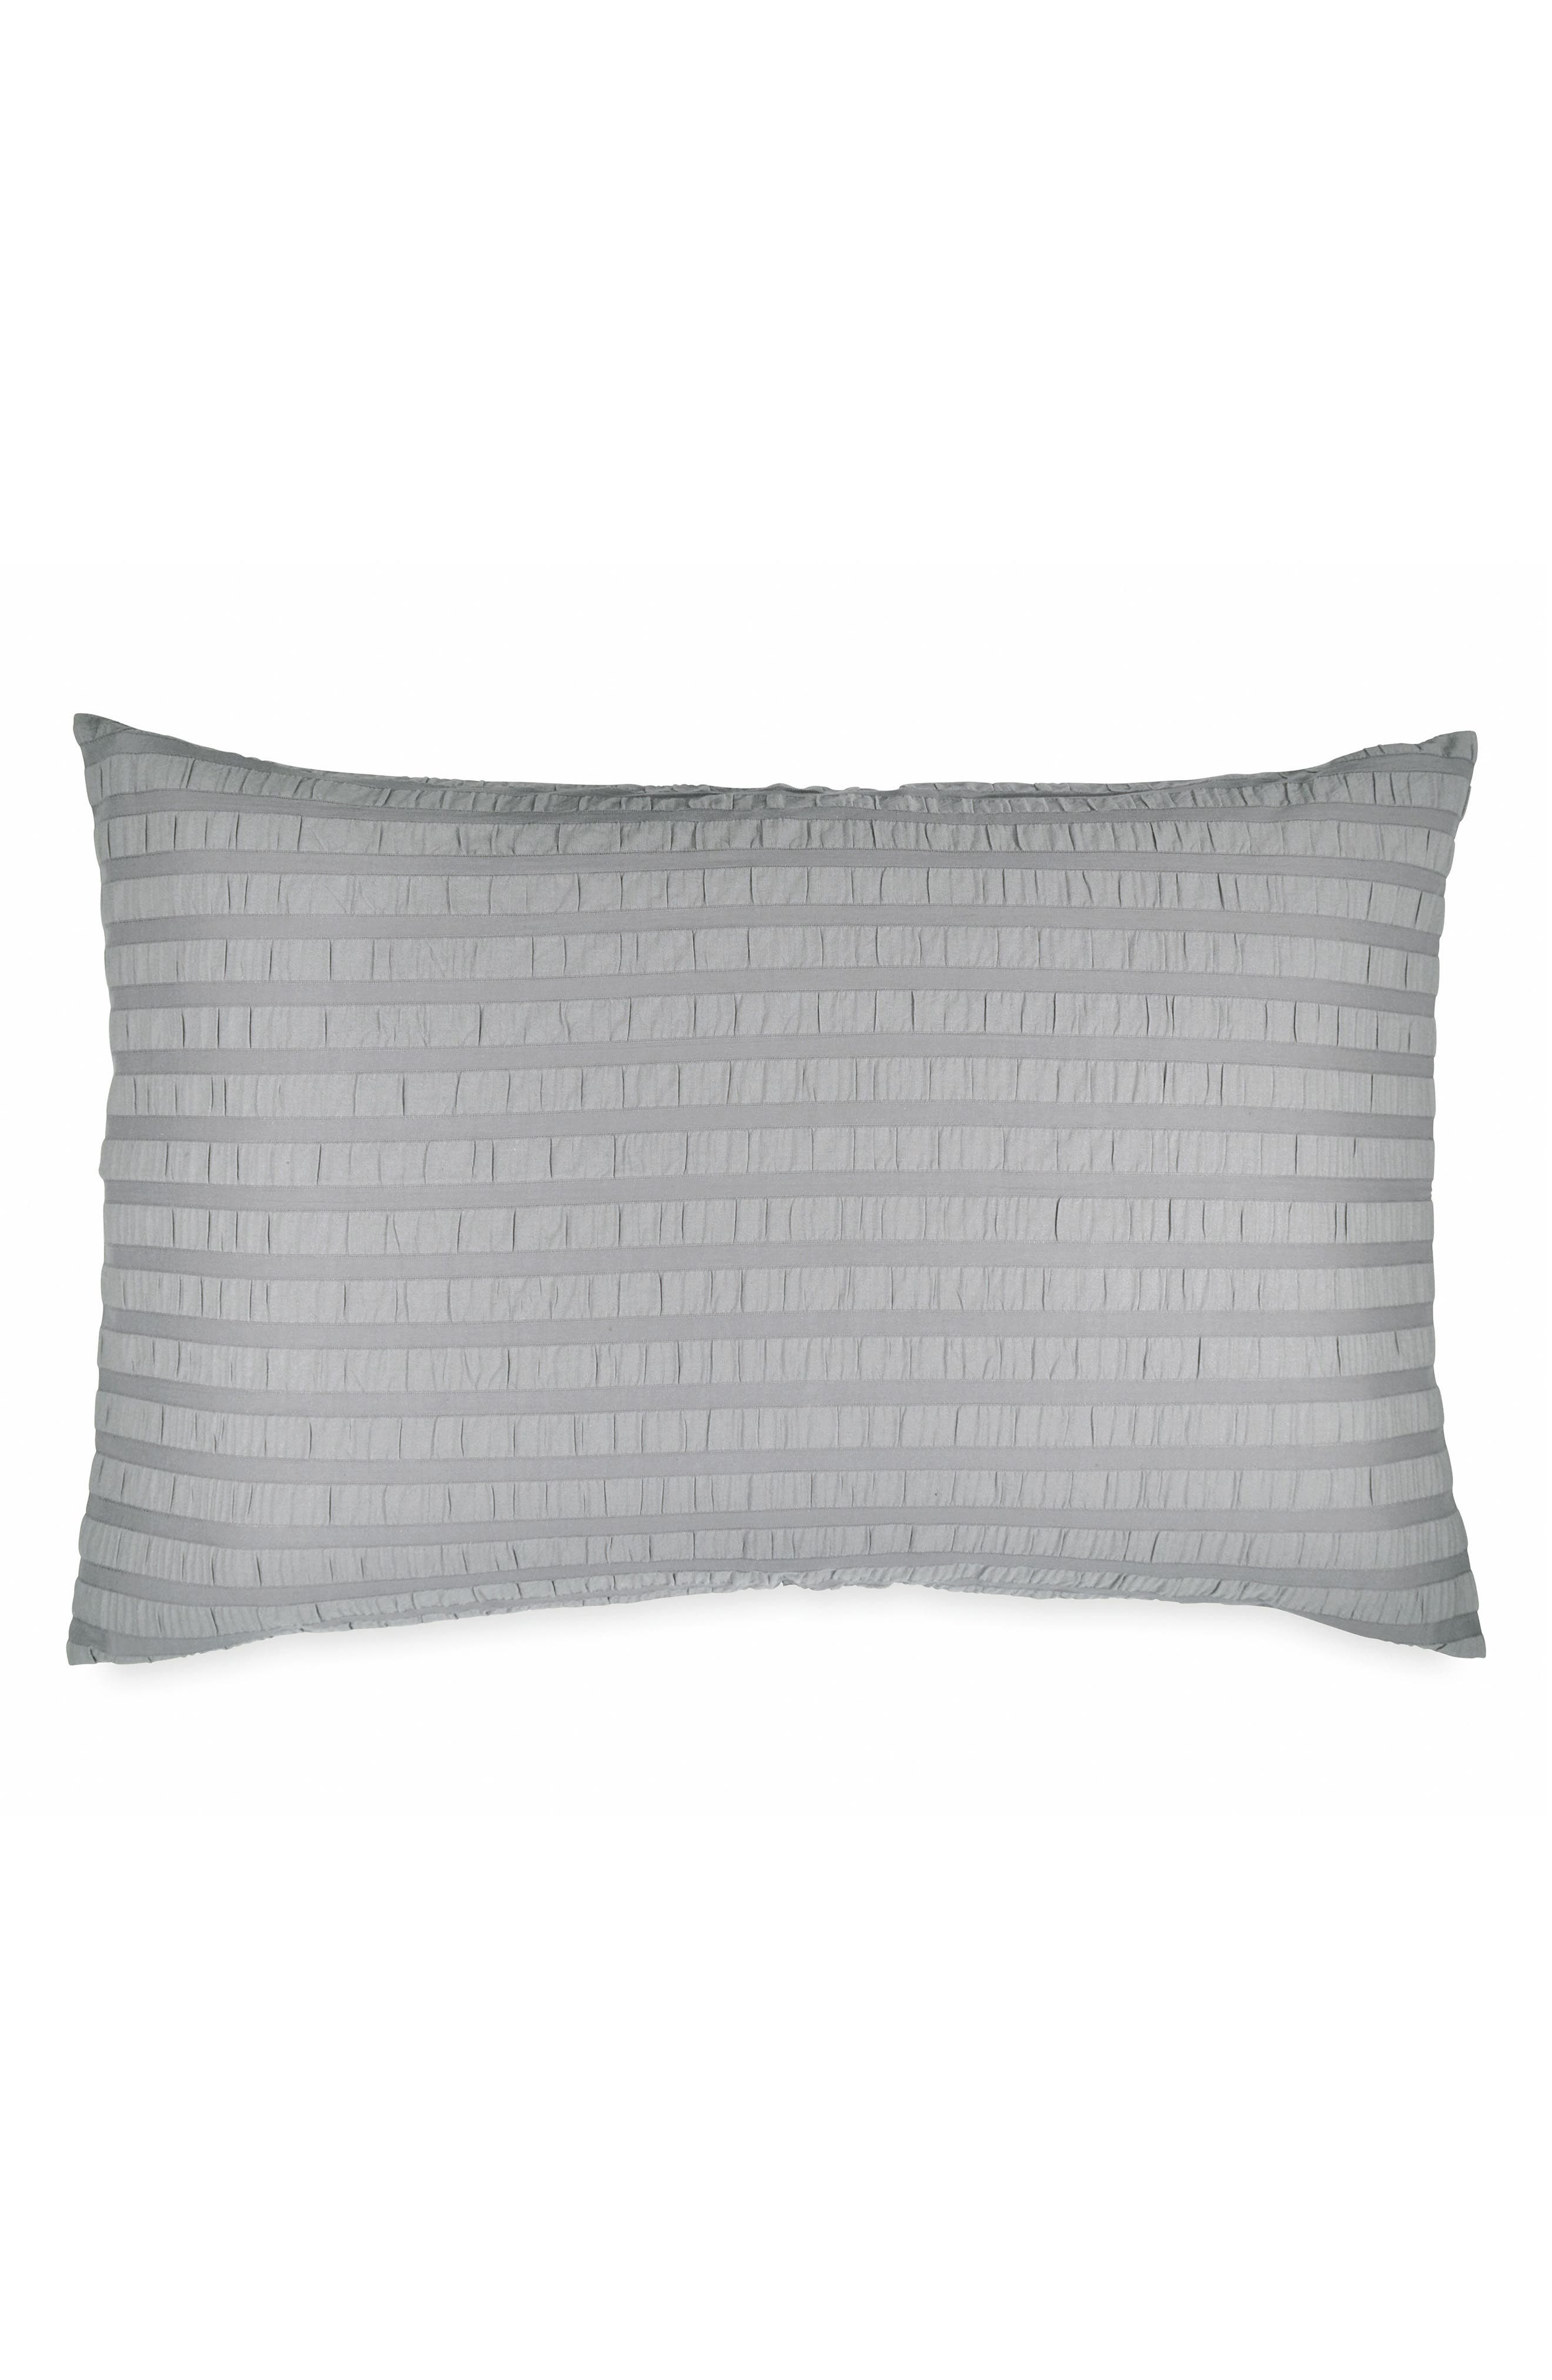 City Crush Sham,                             Main thumbnail 1, color,                             GREY